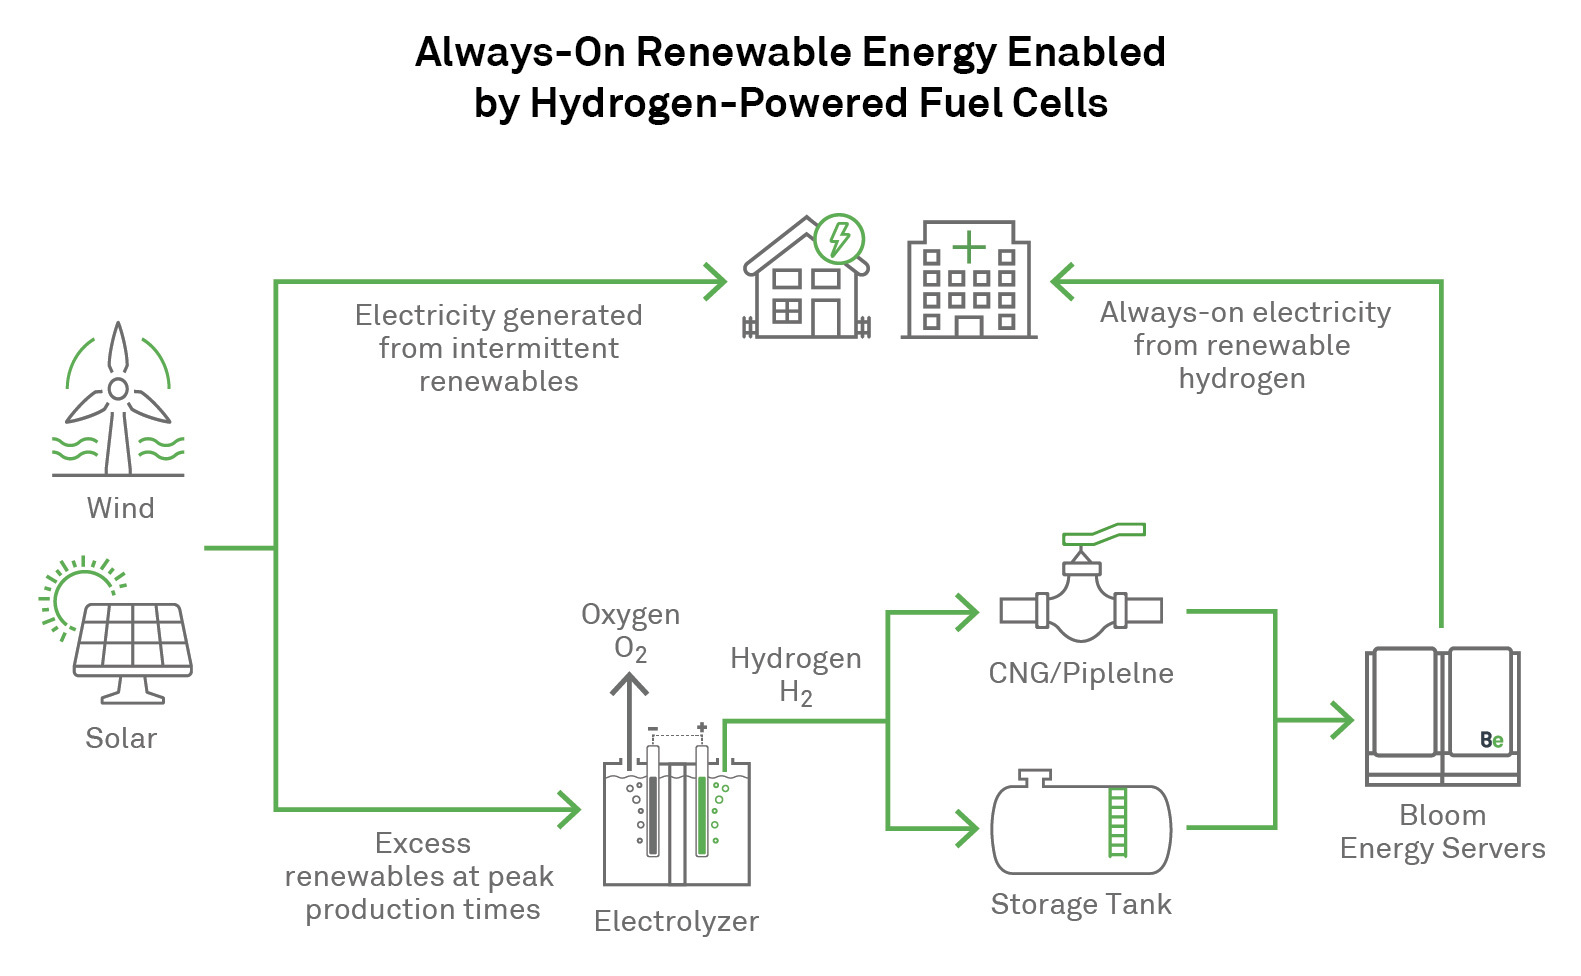 hight resolution of bloom energy announces hydrogen powered energy servers to make always on renewable electricity a reality business wire